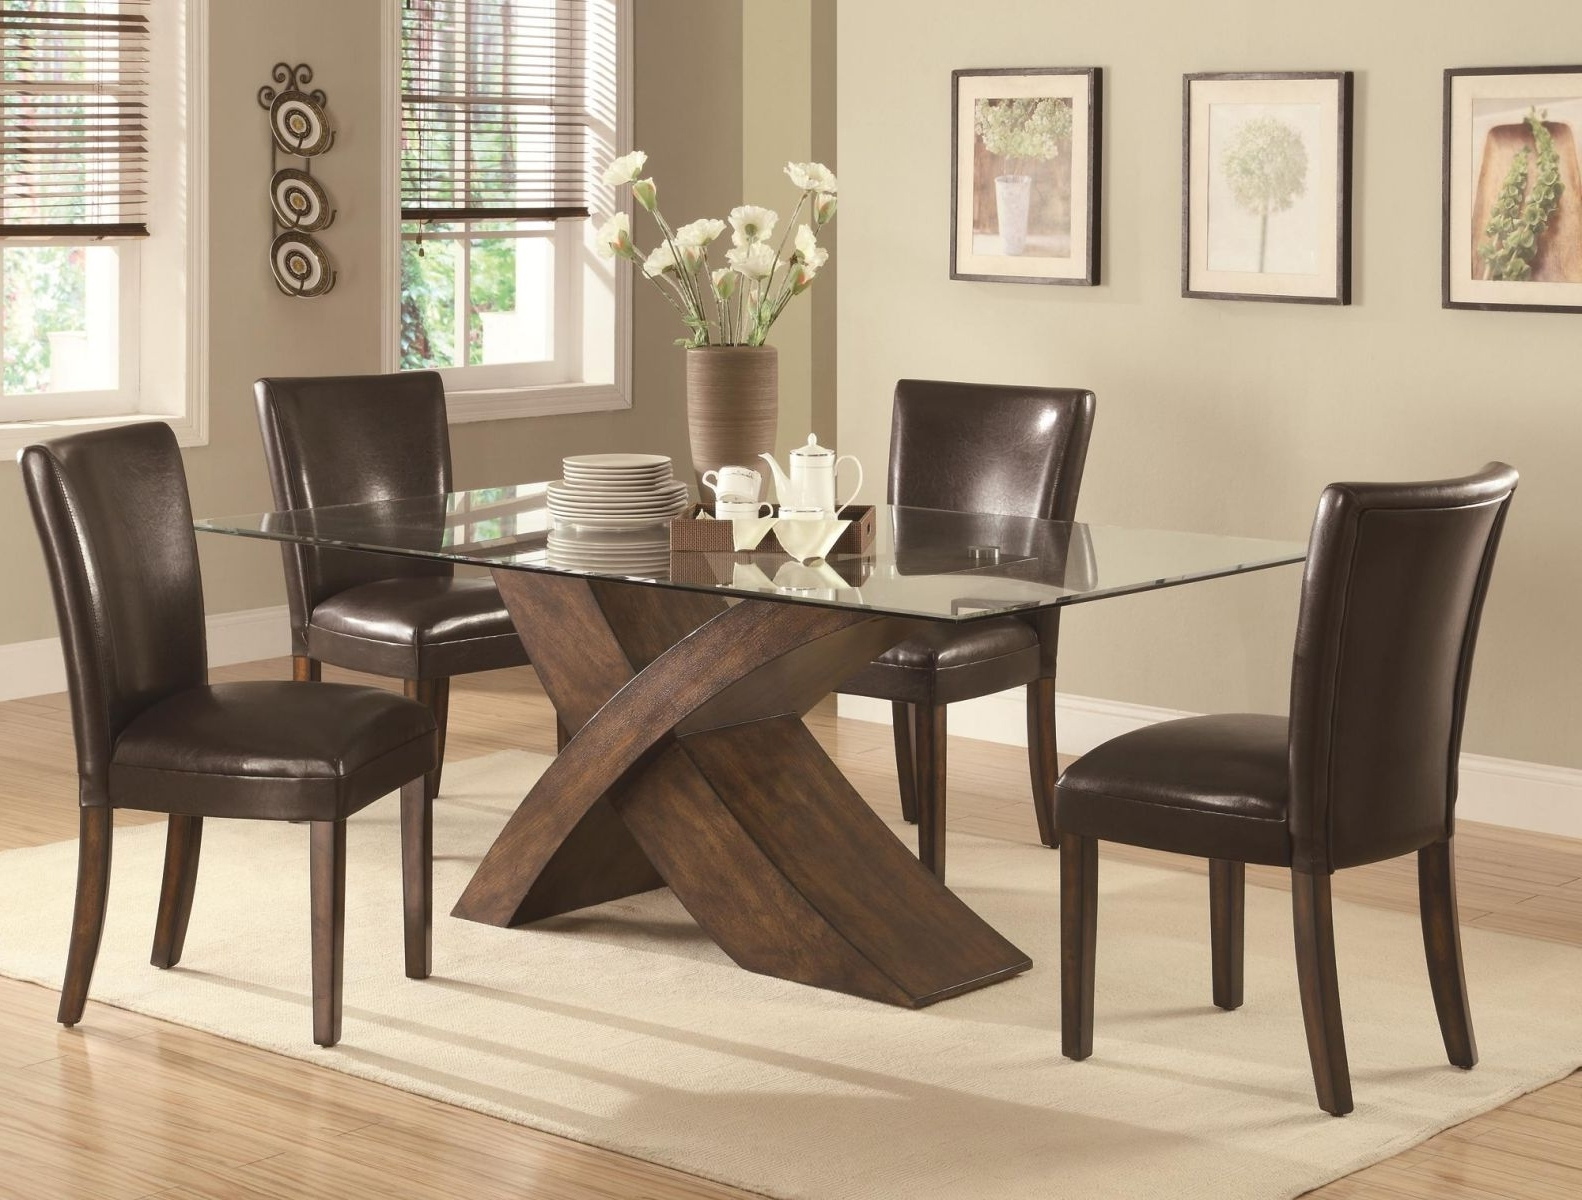 Favorite Modern Dining Suites Regarding Dining Room Table Prices Dining Room Design Di # (View 9 of 25)